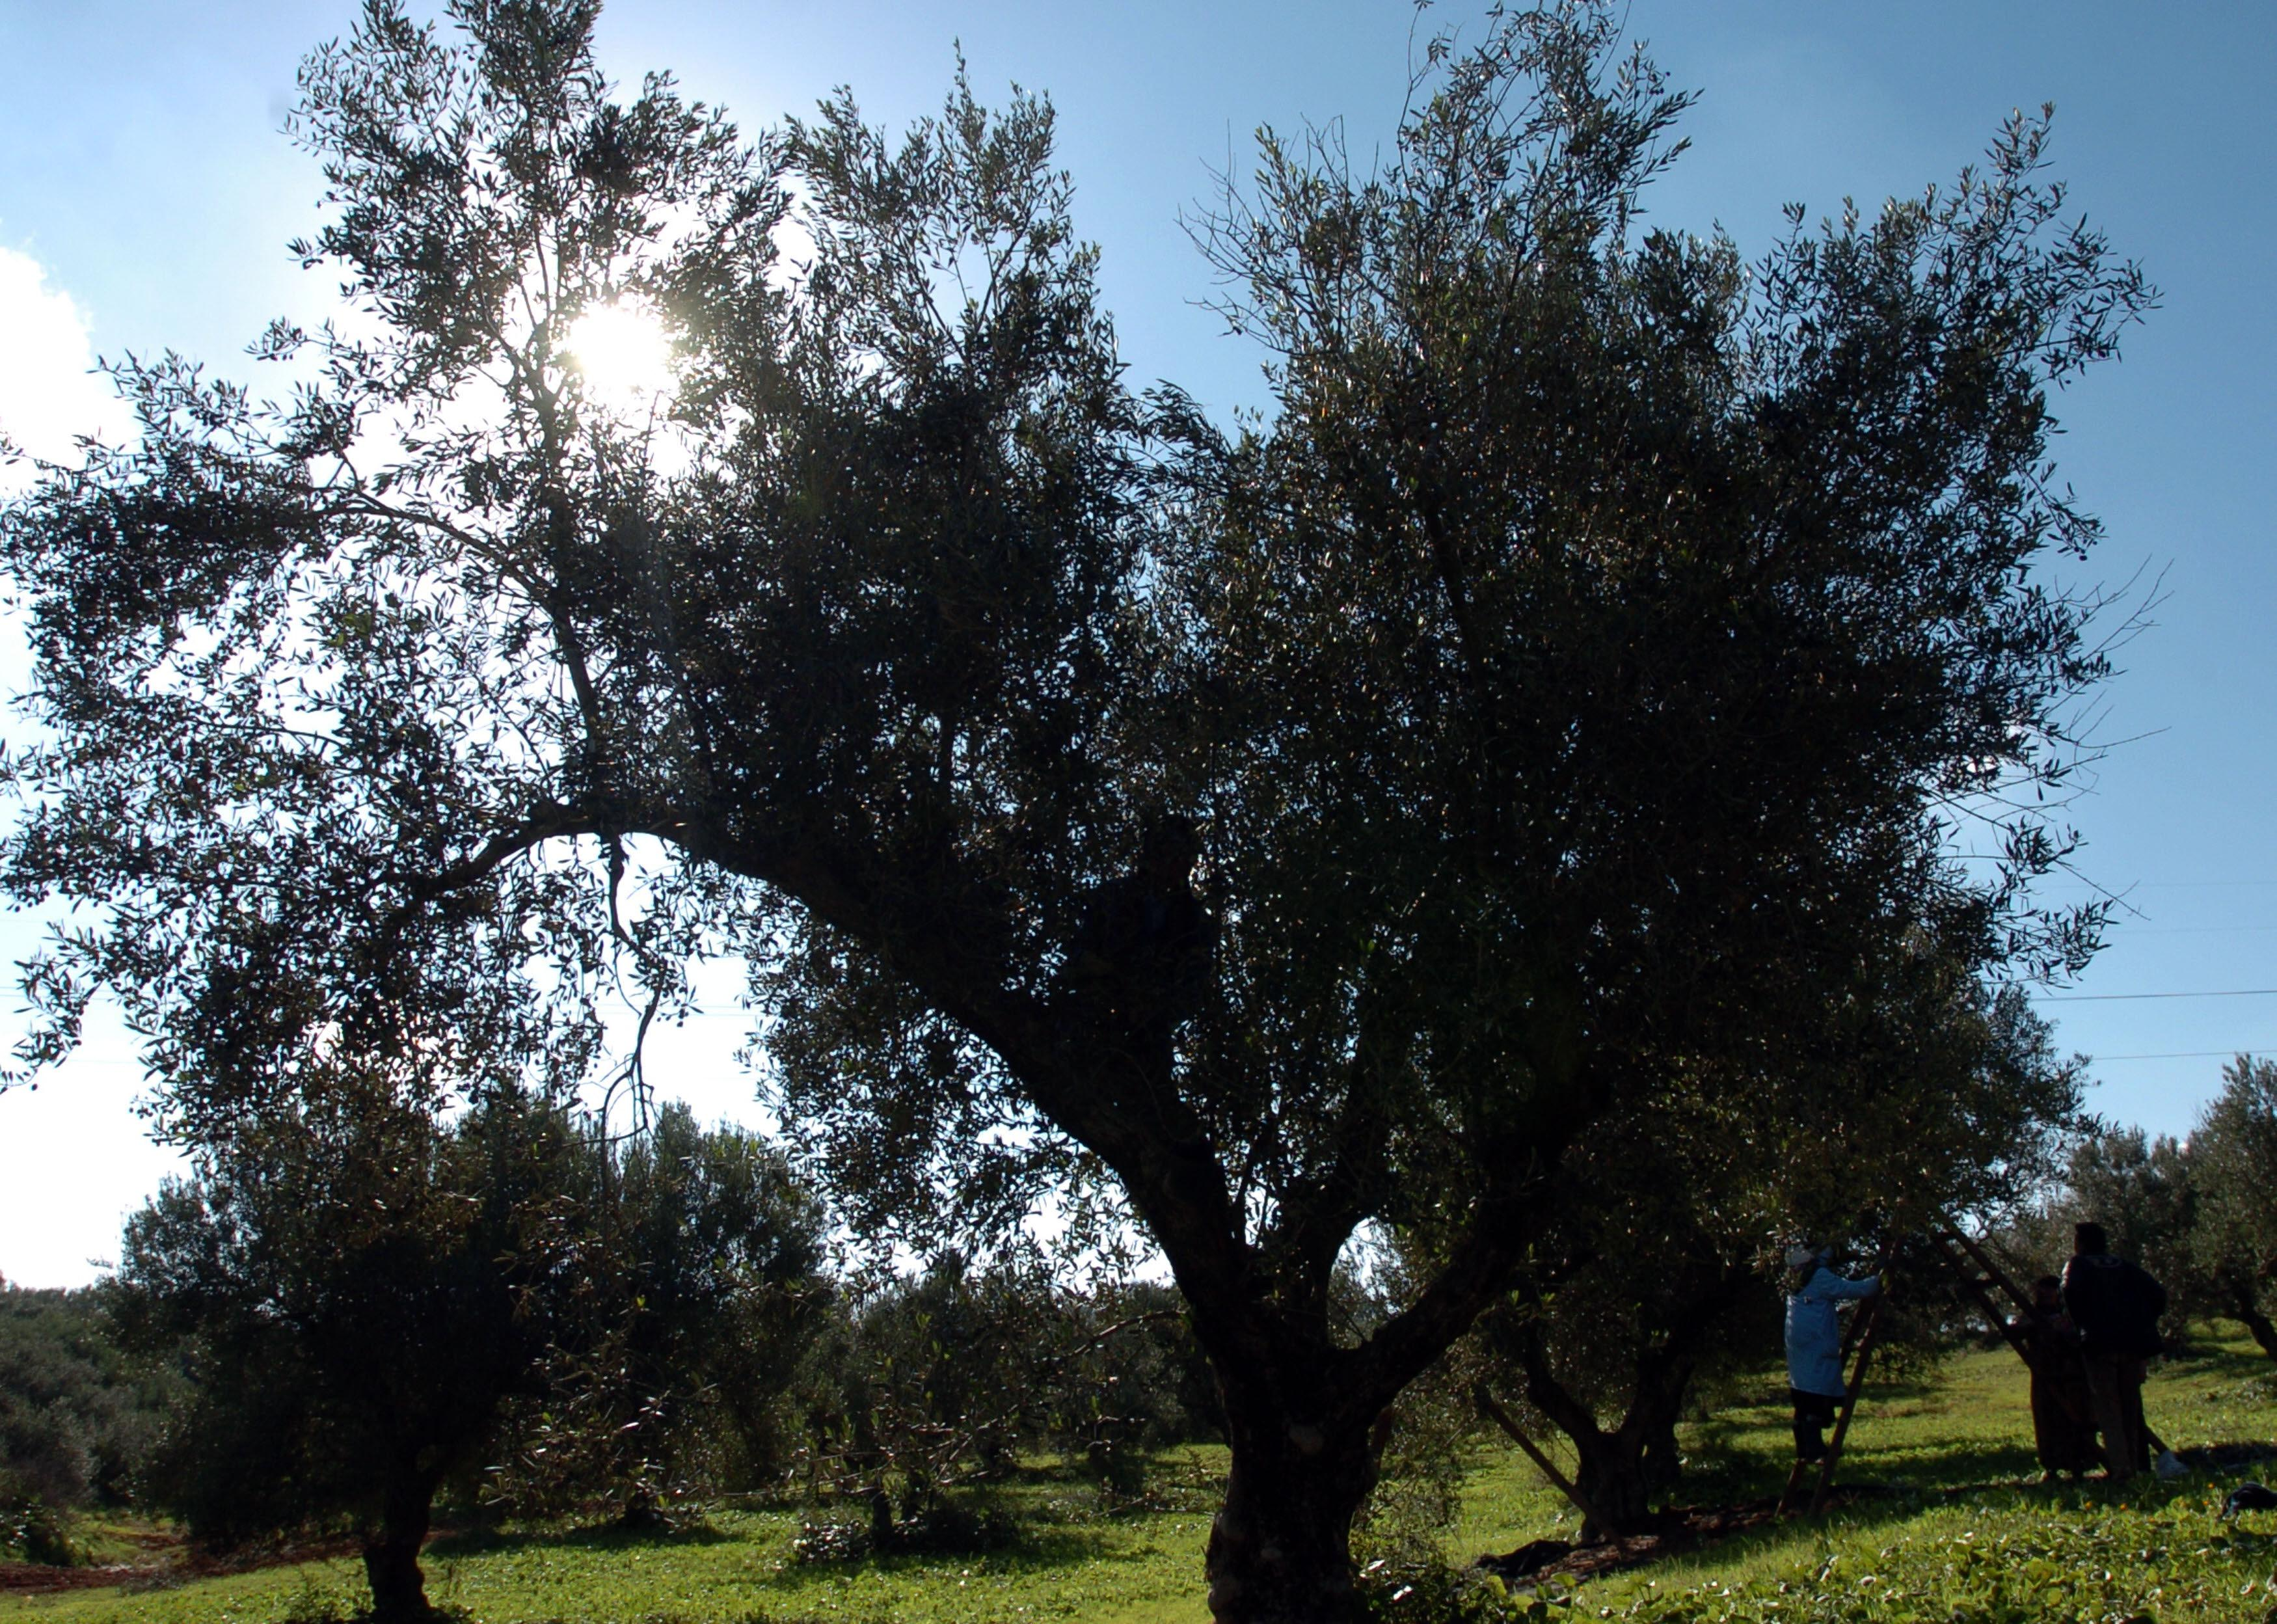 Tunisians workers pick olives in Sabbalet Ammar near Tunis